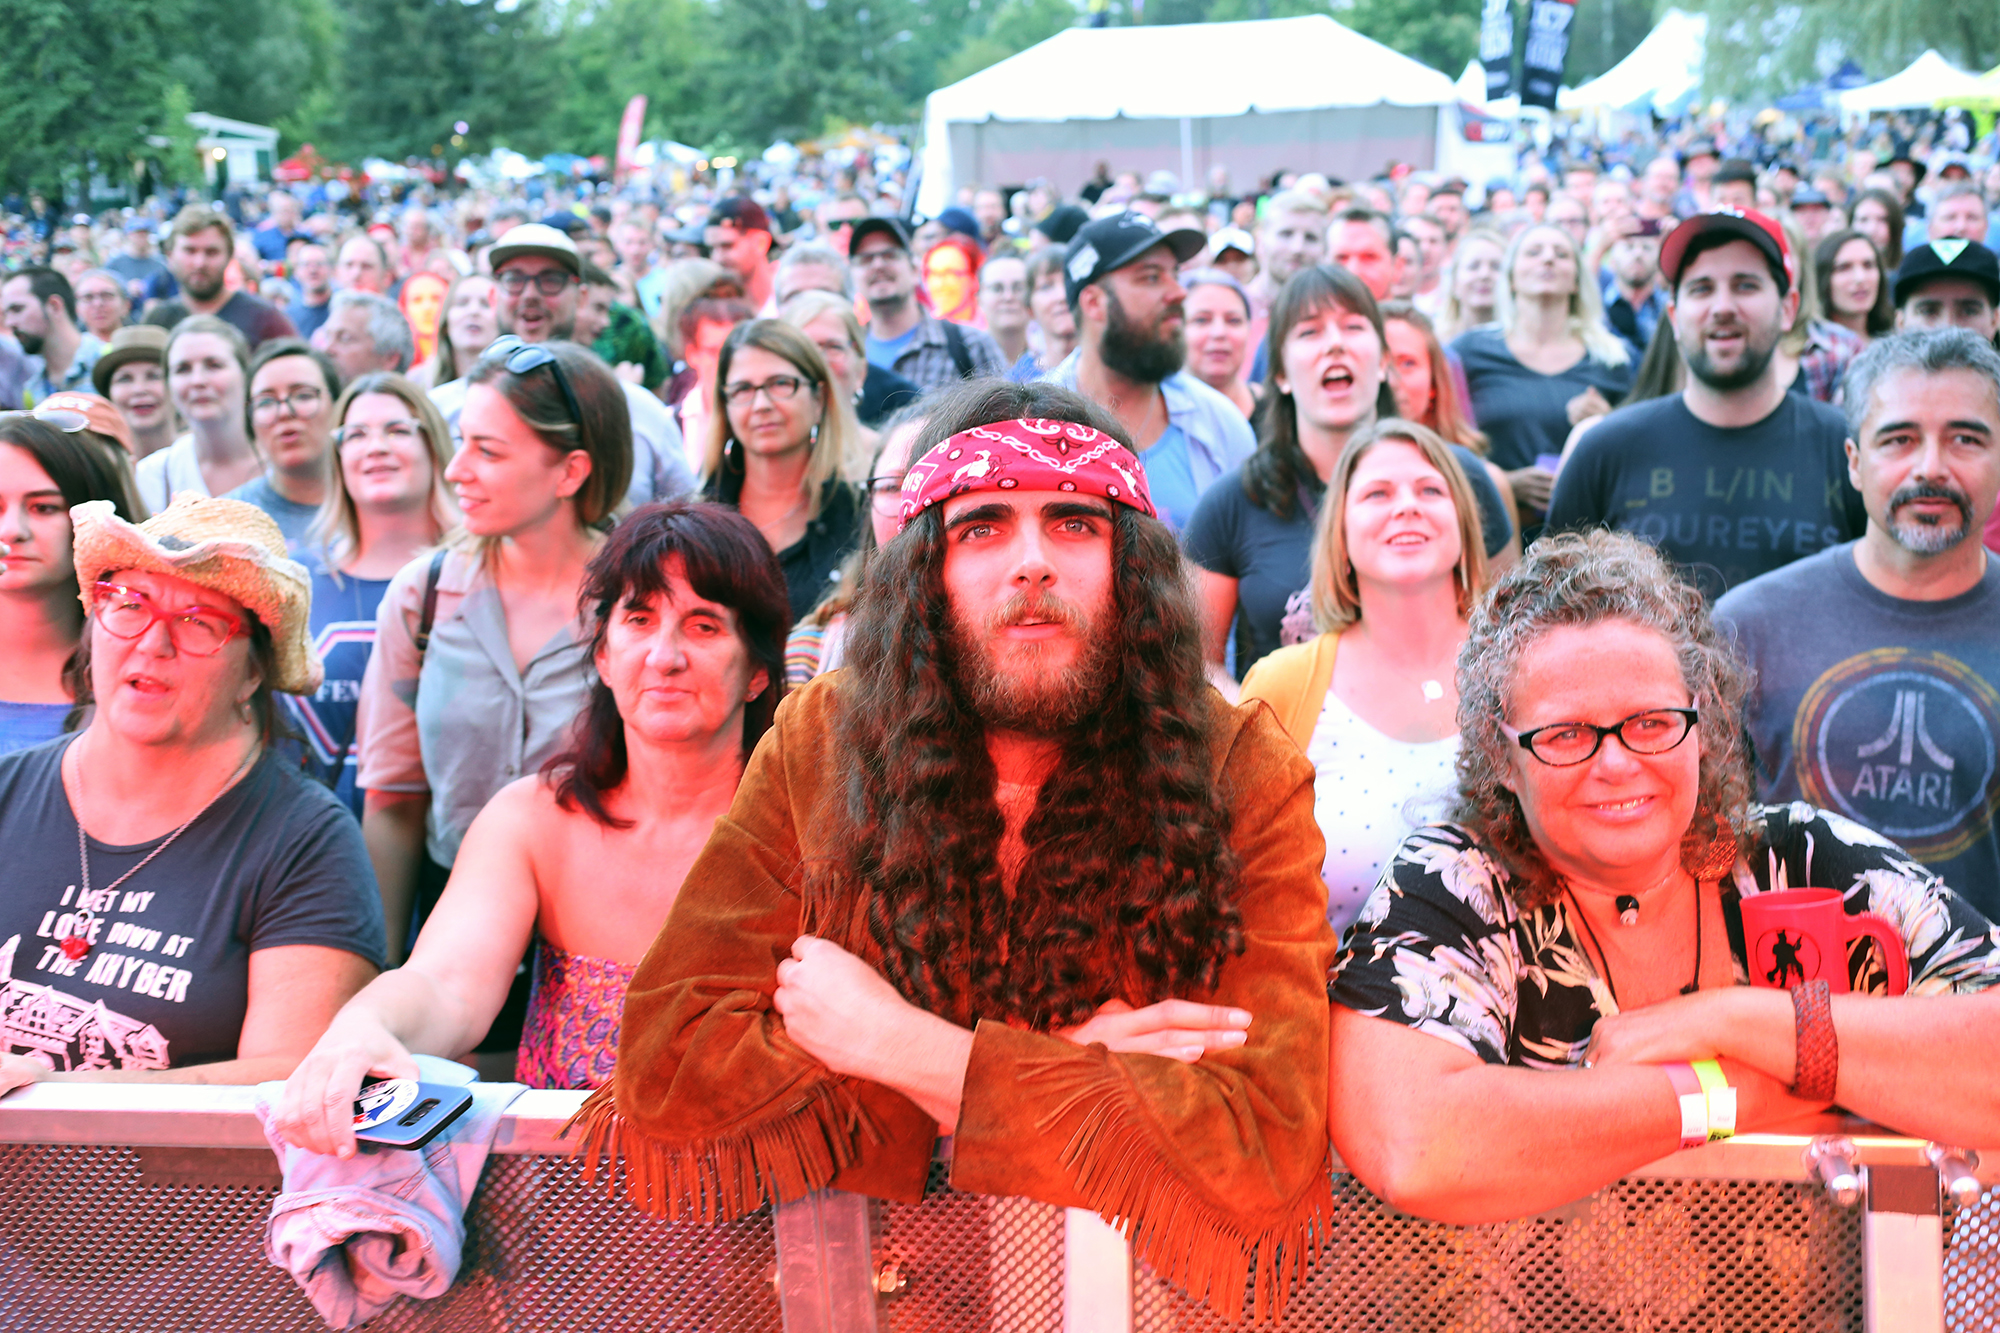 The Sheepdogs, Men Without Hats and a little drizzle on opening day of Riverfest (17 photos)